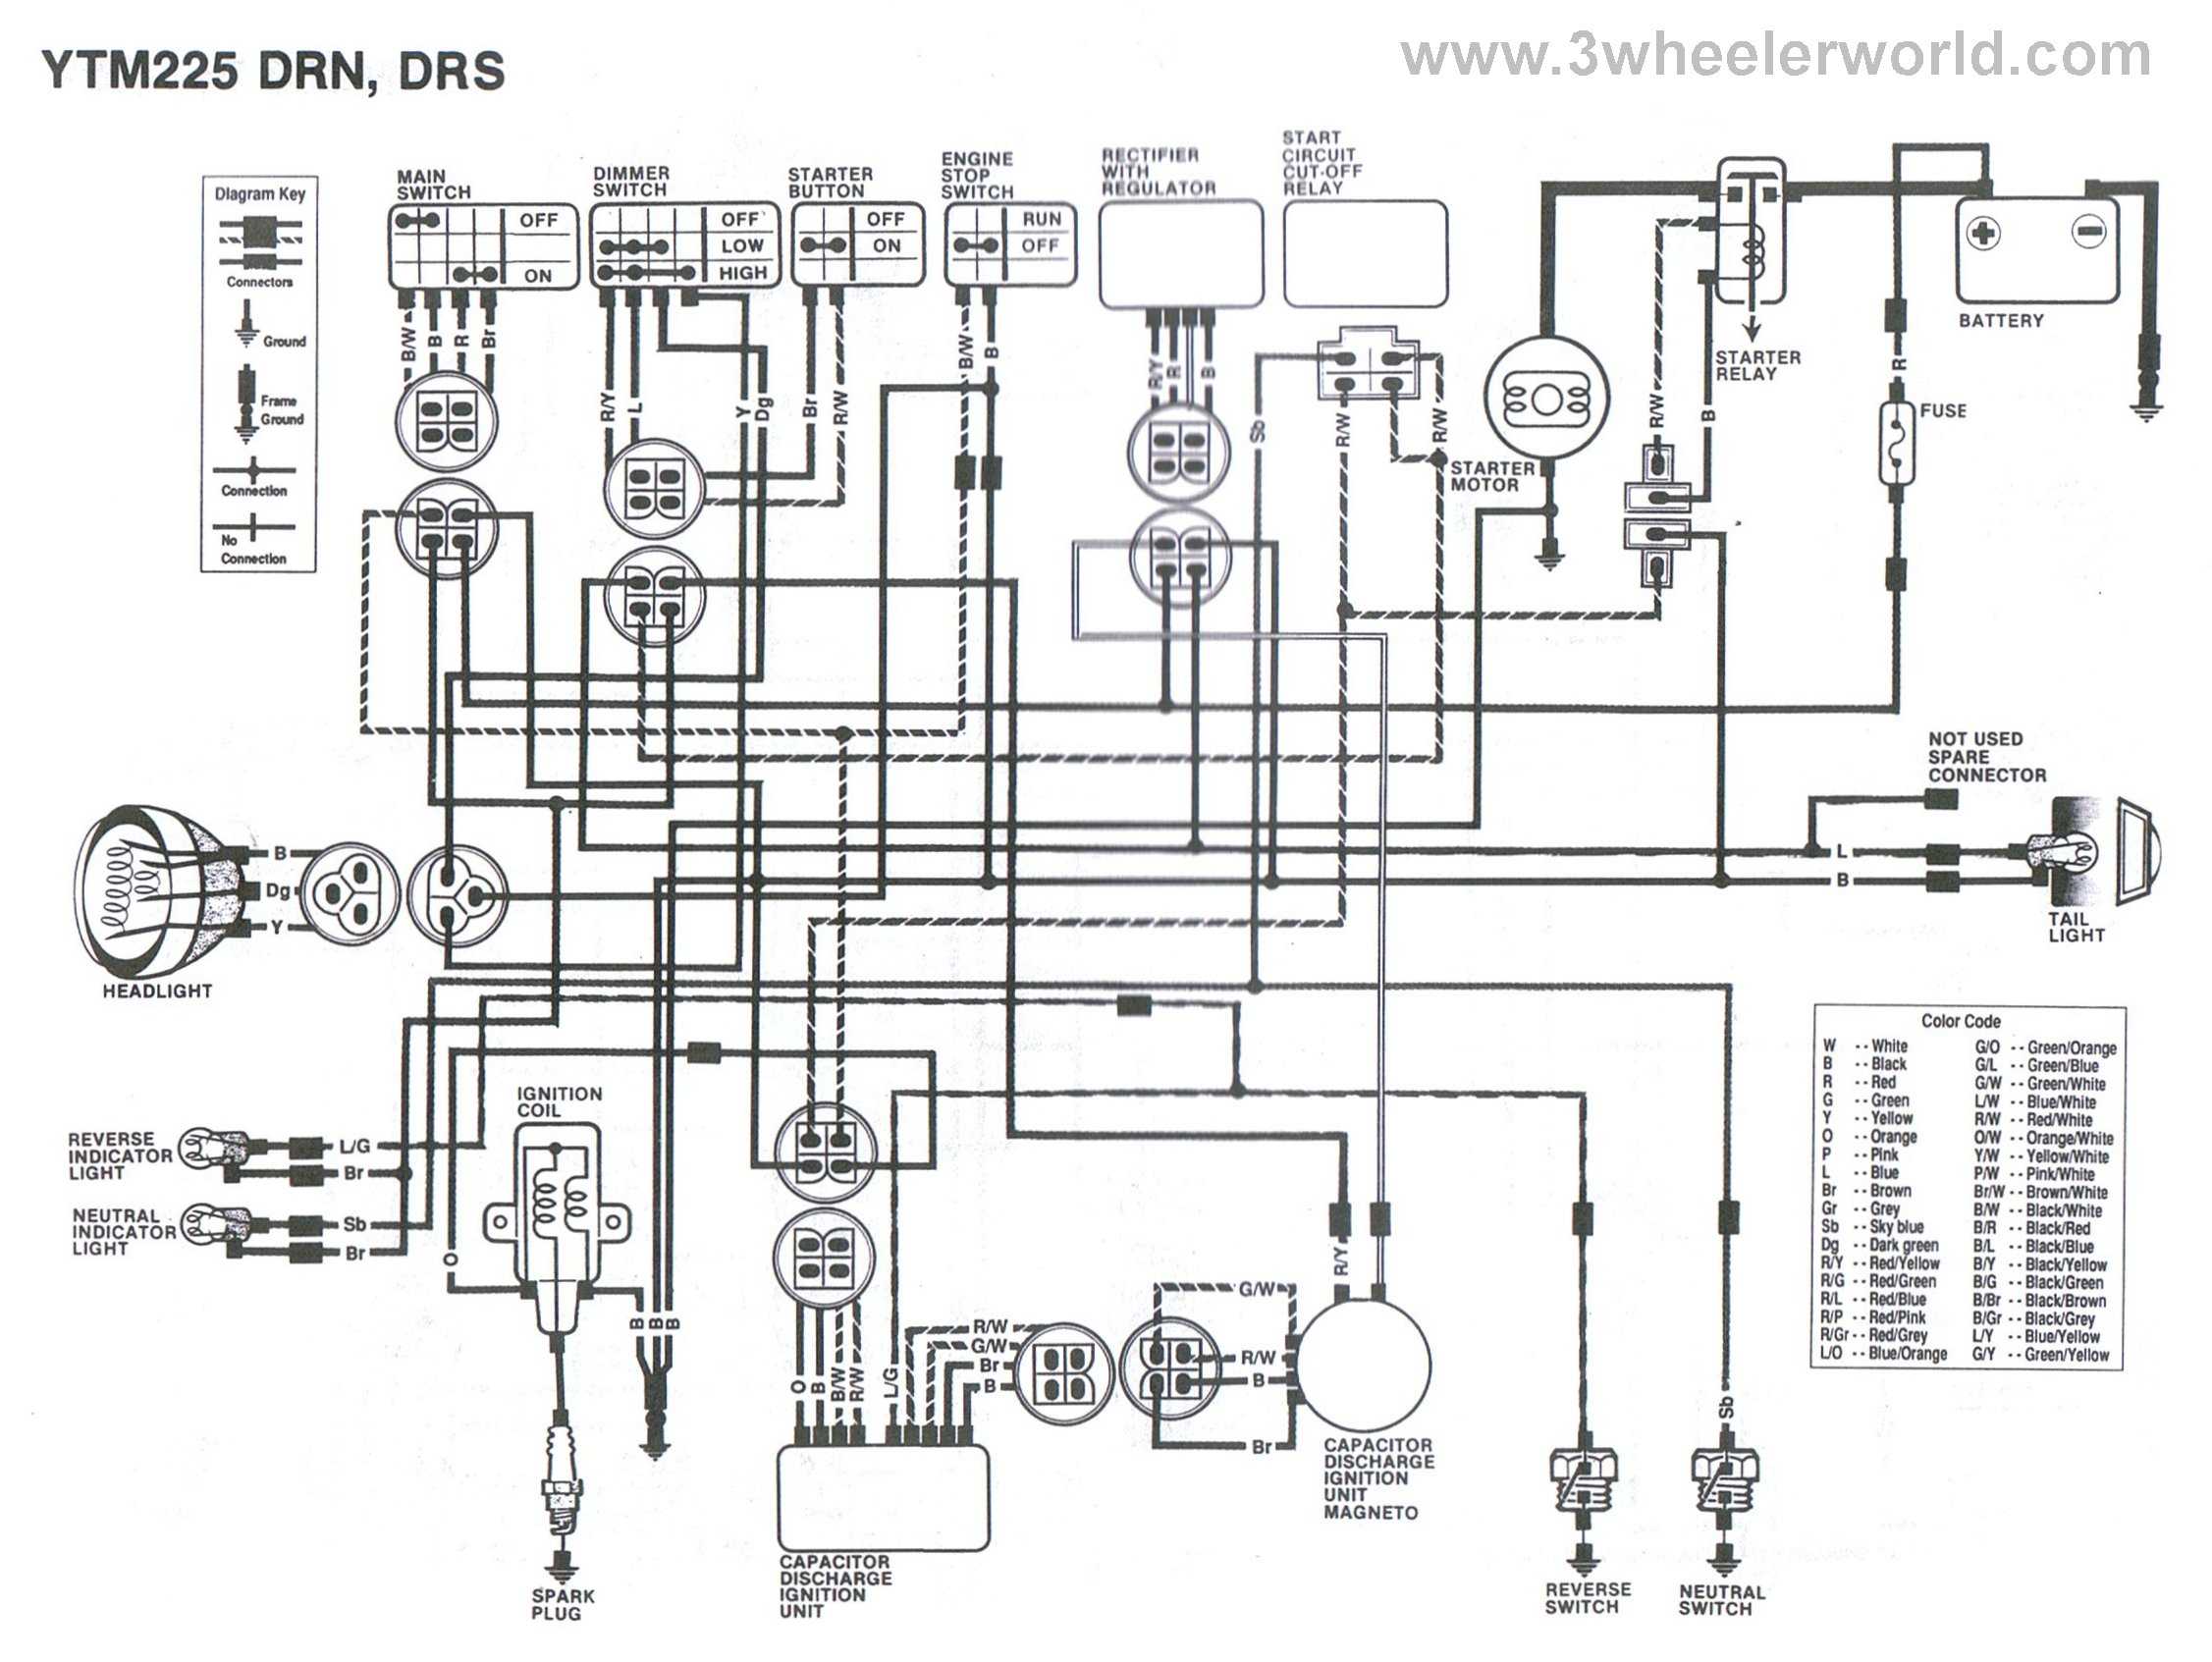 yamaha electric bass guitar wiring diagram best wiring library Yamaha DT 175 Wiring-Diagram 3 wheeler world tech help yamaha wiring diagrams rh 3wheelerworld com yamaha bass guitar wiring schematics